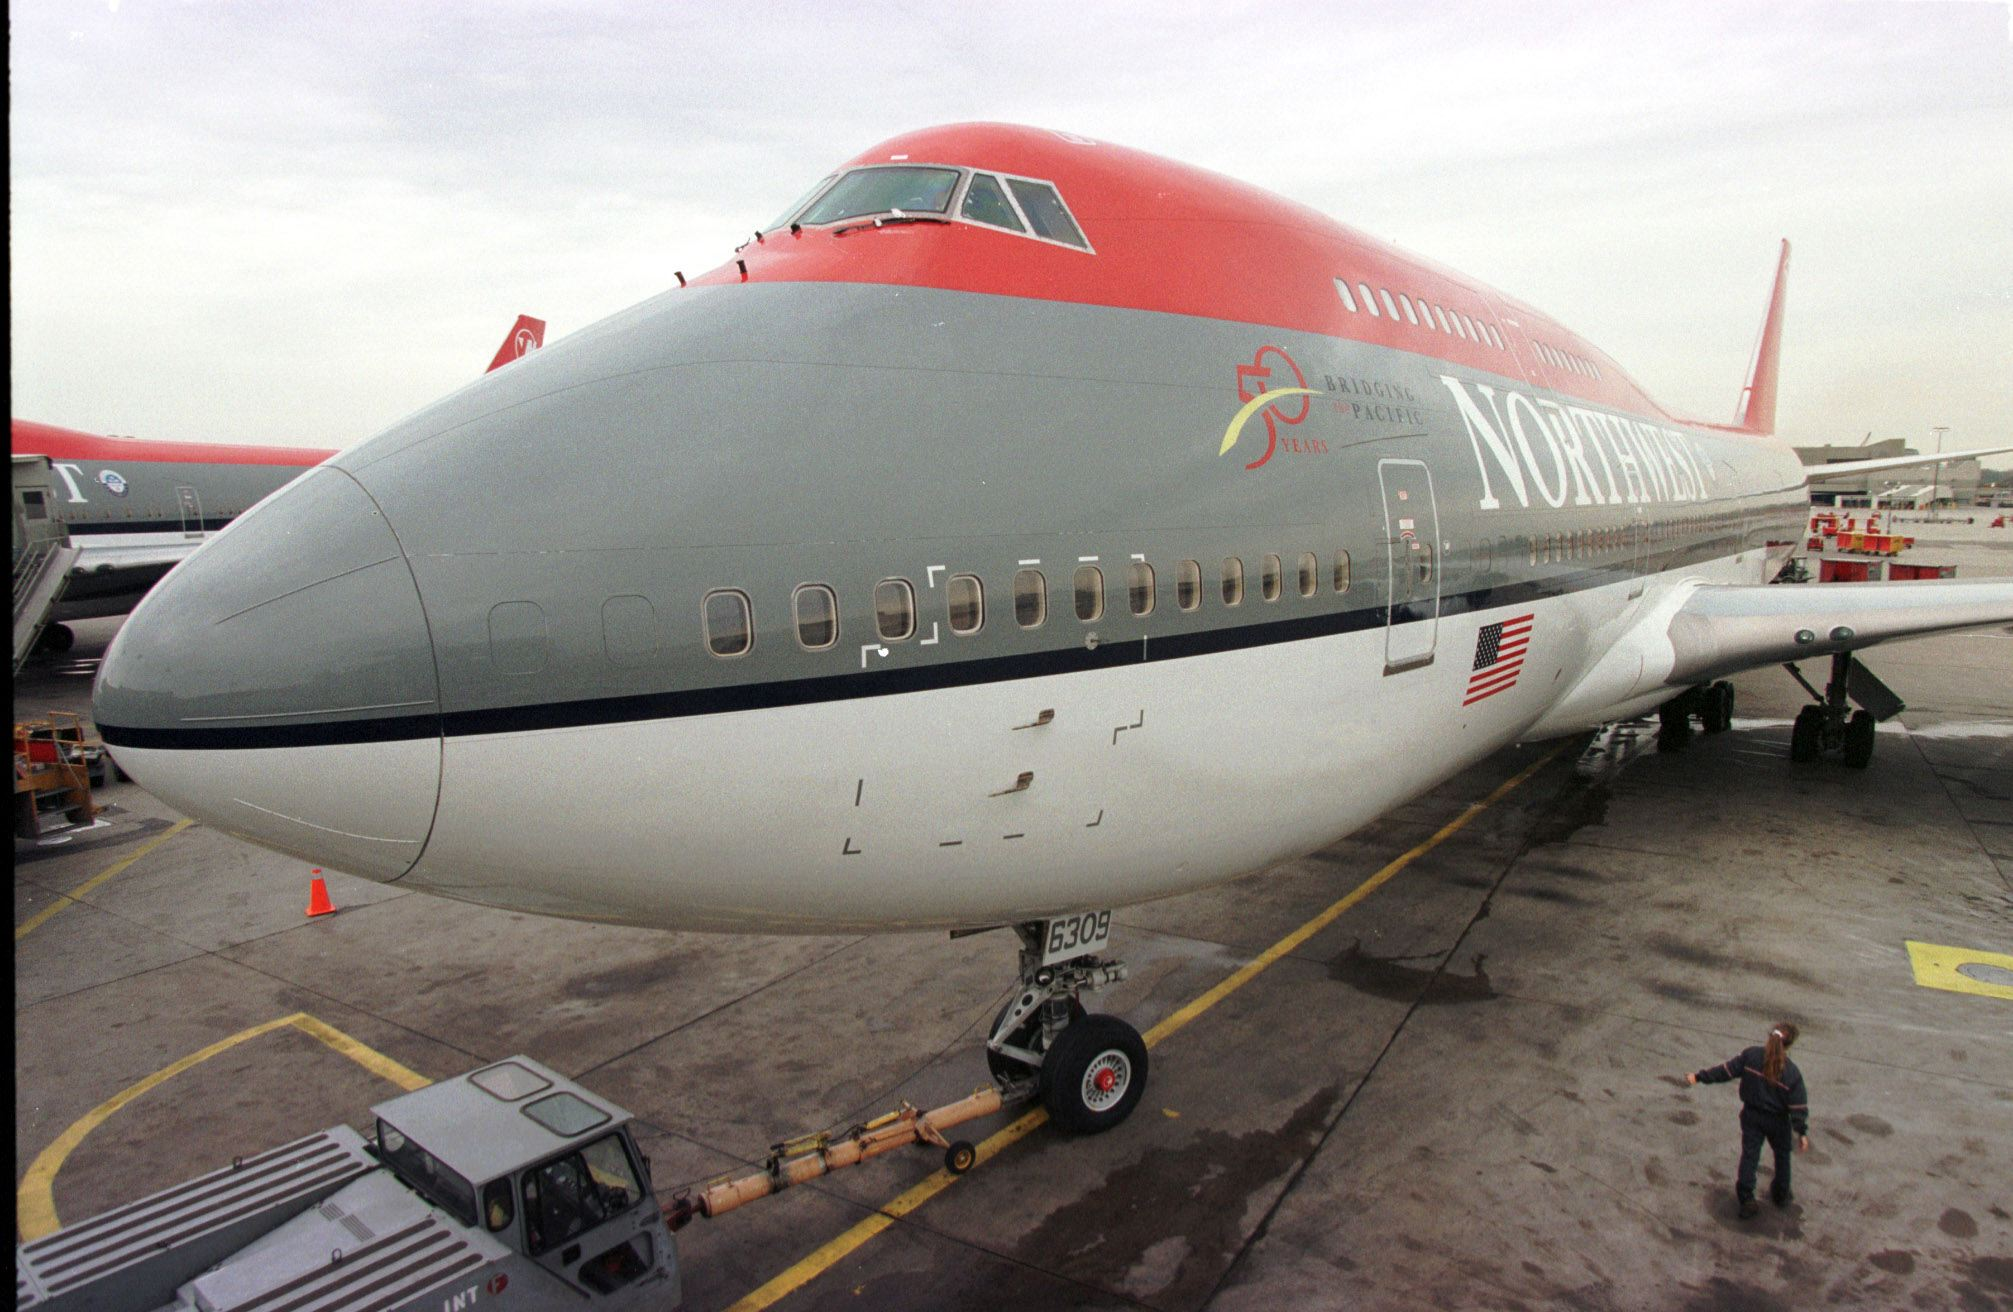 A Northwest Airlines 747 leaves the runway at Detr